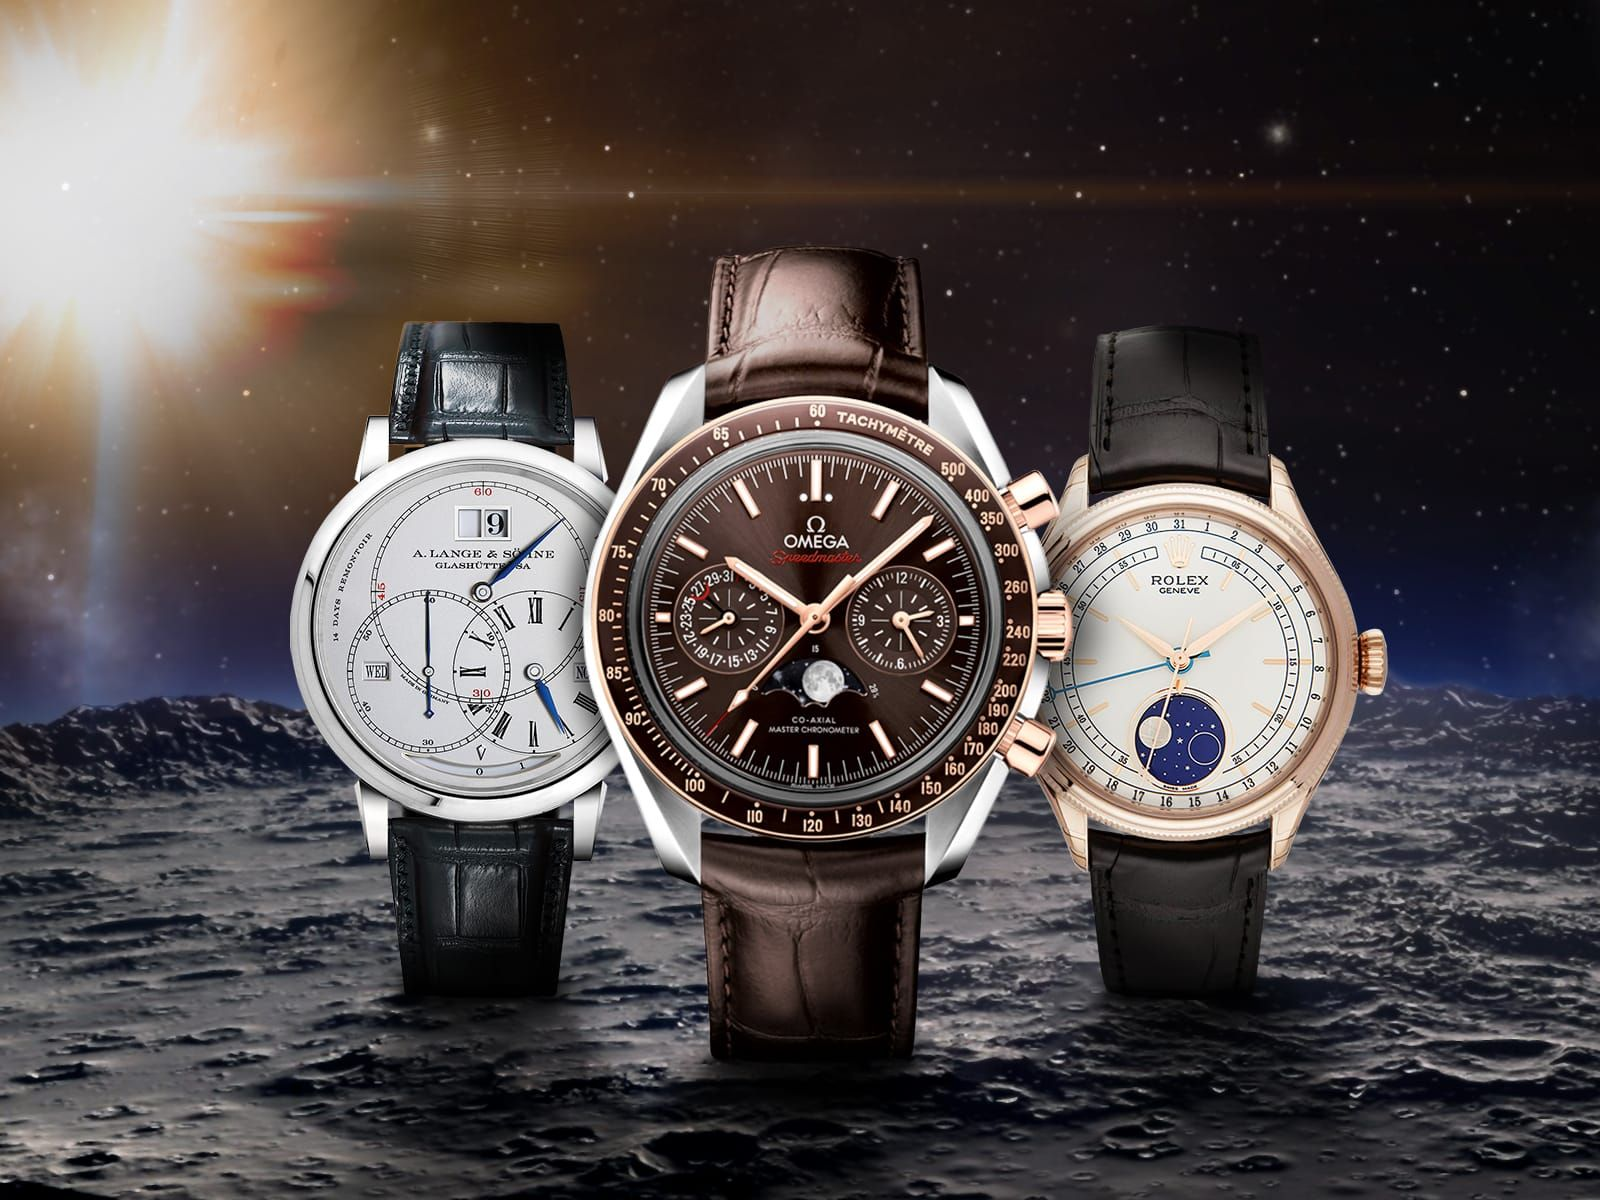 Sun Moon And Stars Watches With Moon Phase Displays